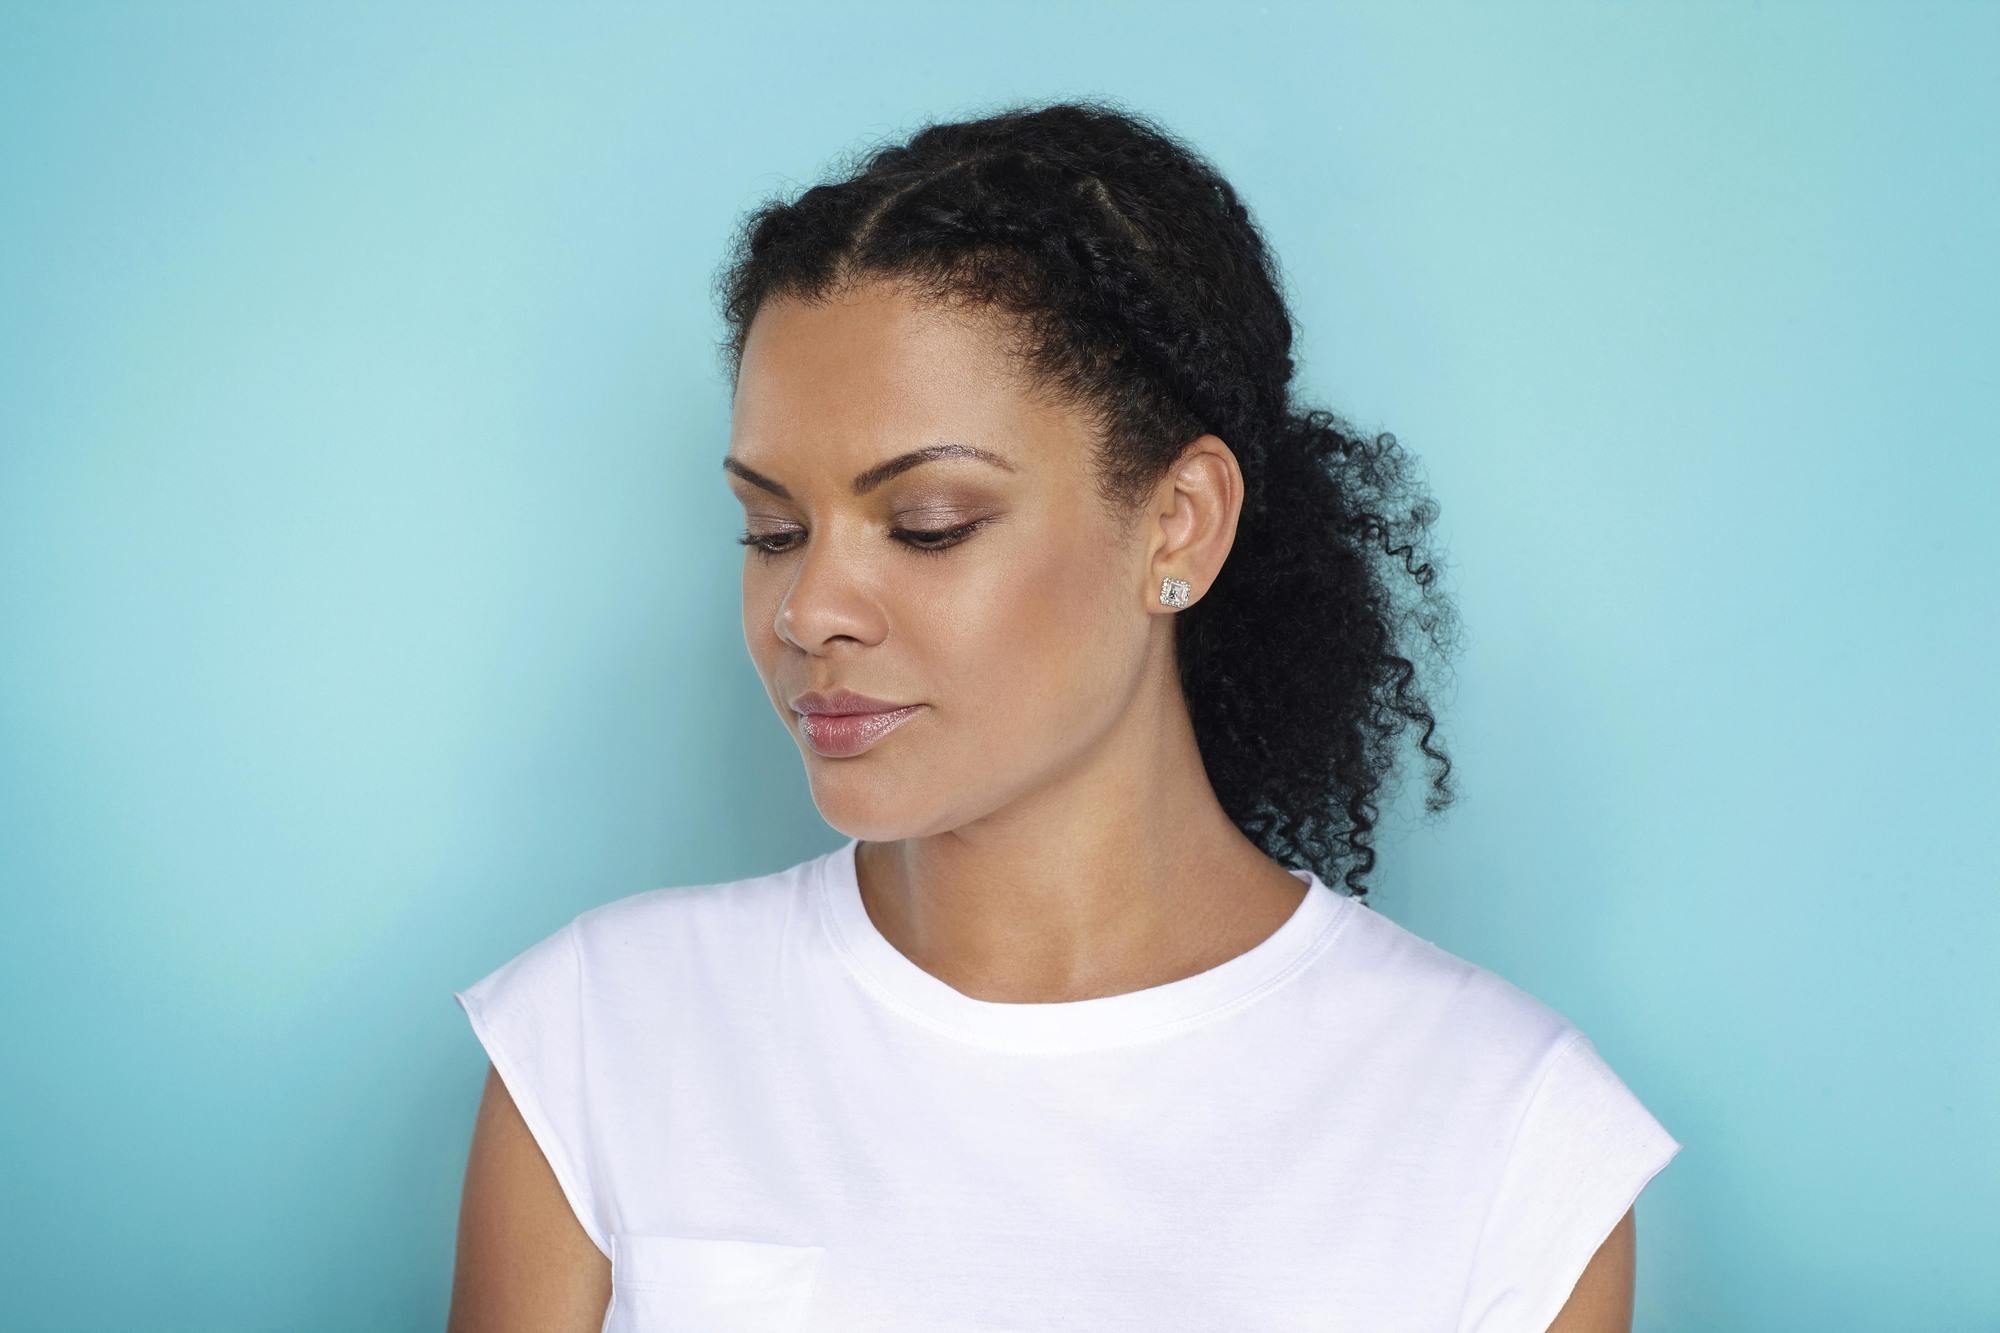 Easy natural hairstyles: Close up shot of woman with natural braided ponytail, wearing all white and posing in studio.